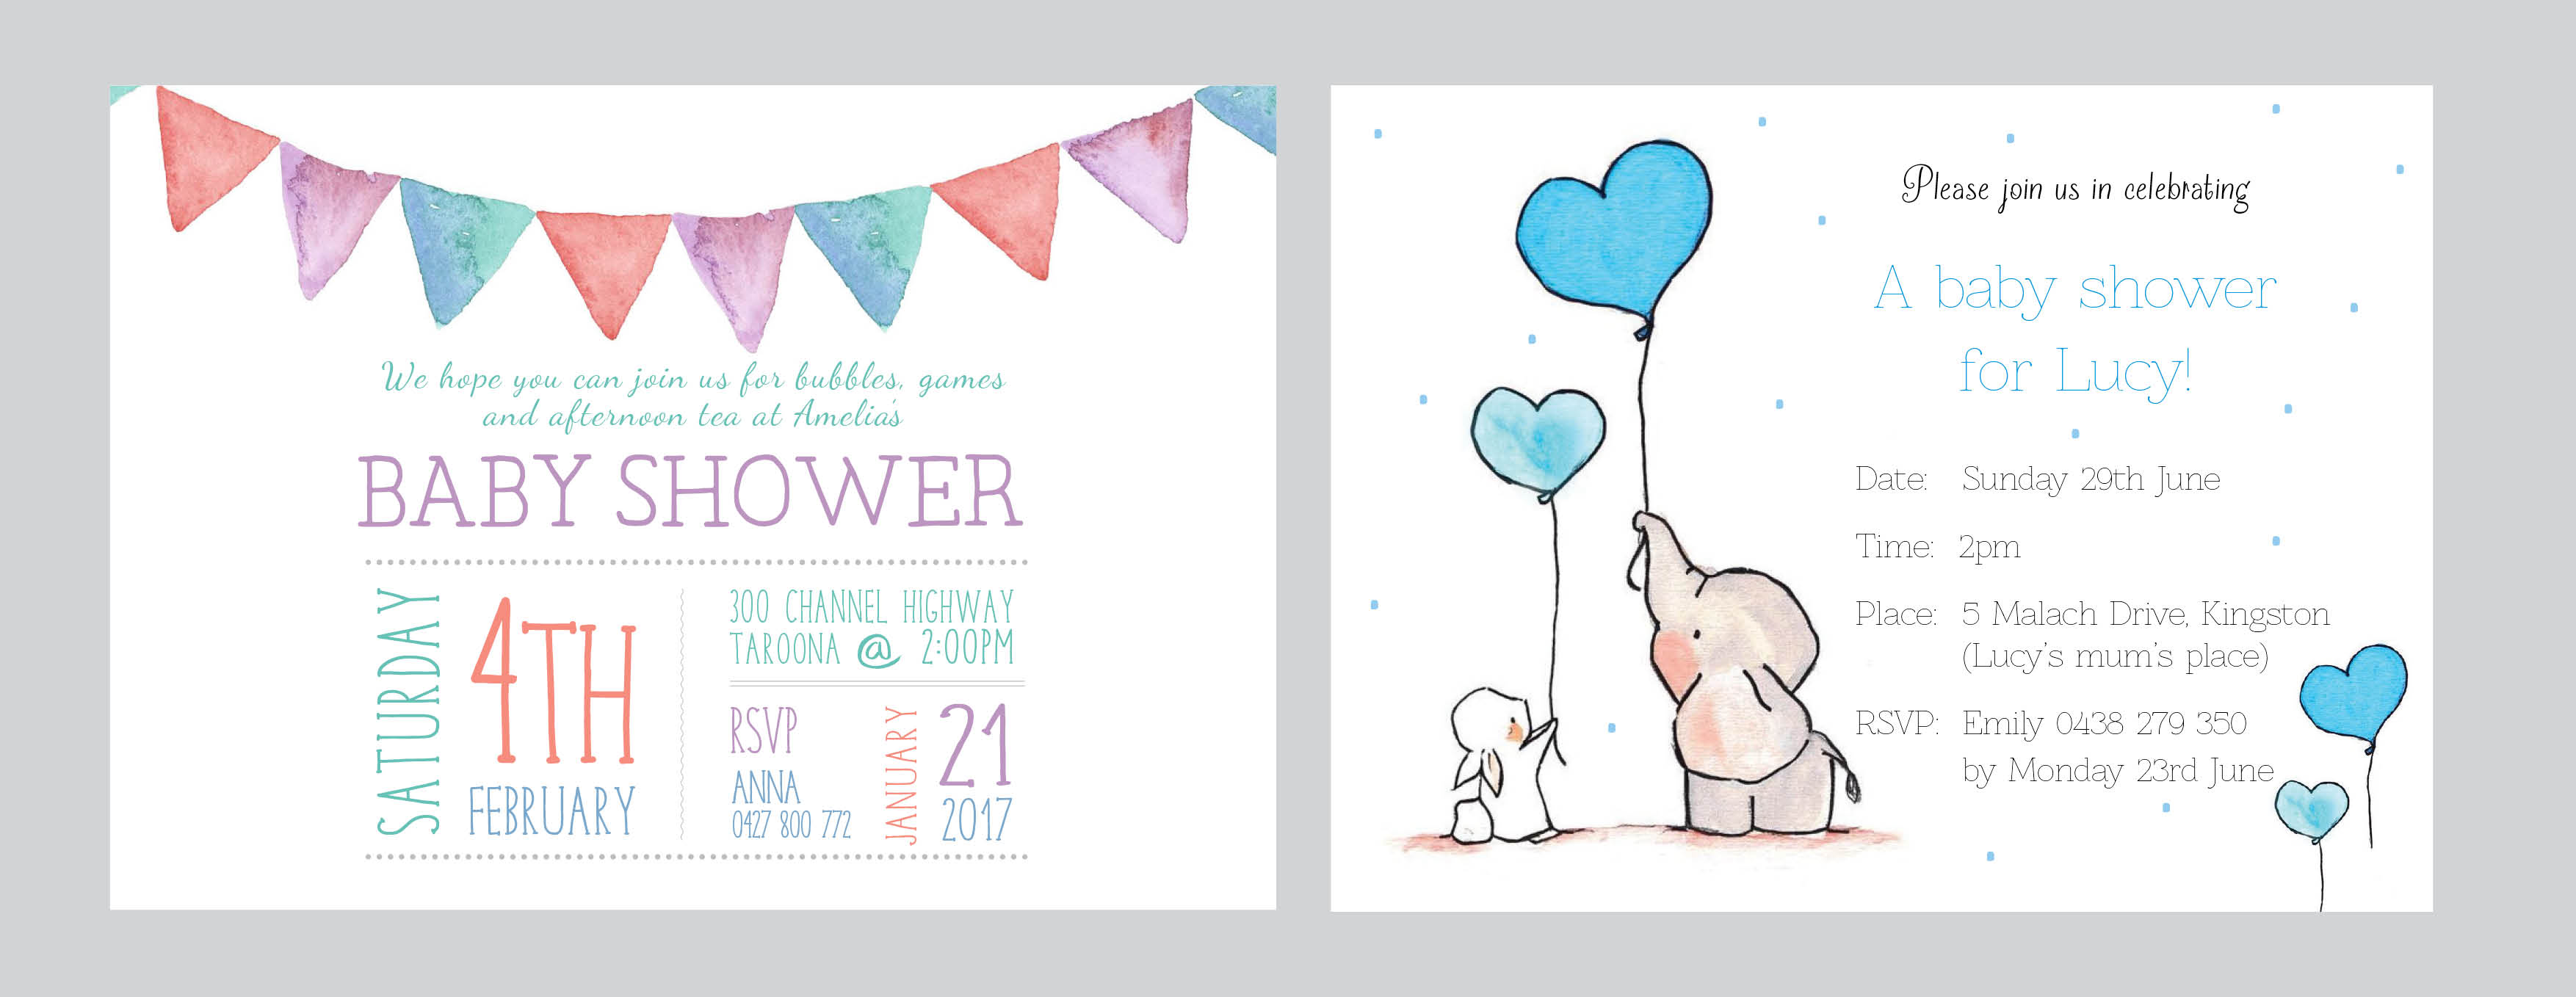 baby shower letters baby shower letter l design 20541 | baby shower